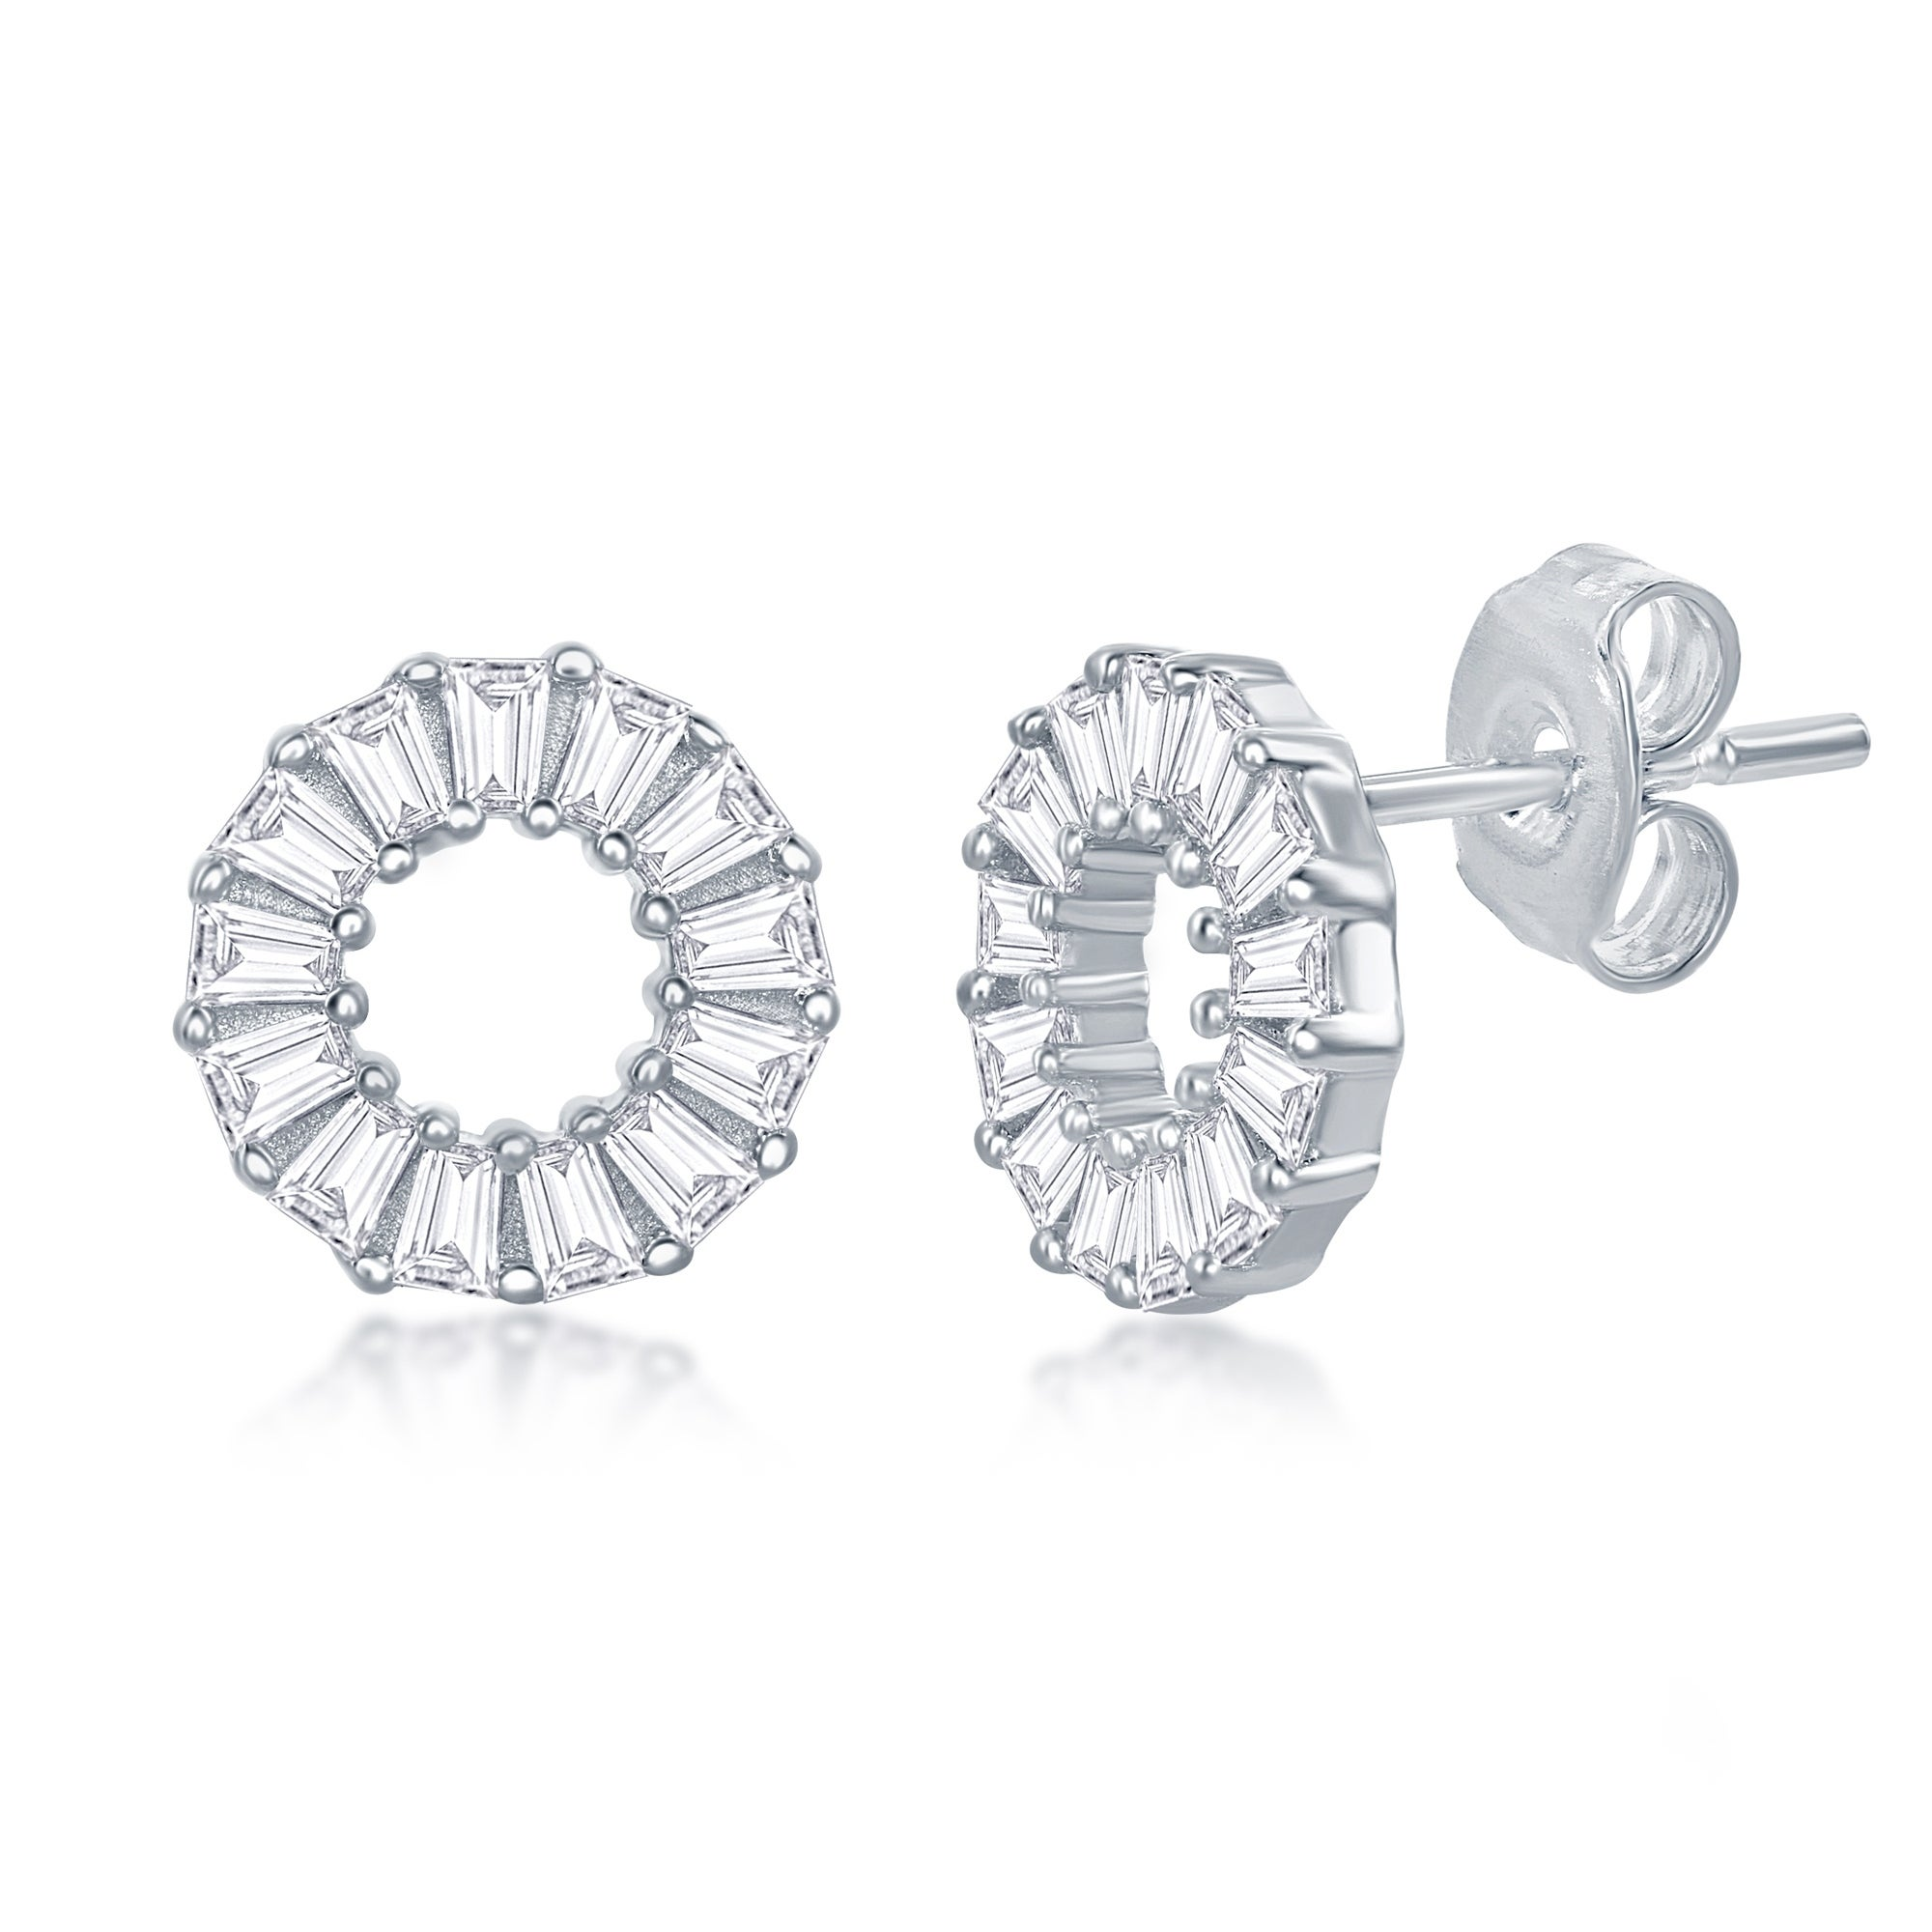 Rose Gold Plated Round Circle Cubic Zirconia Stud Earrings